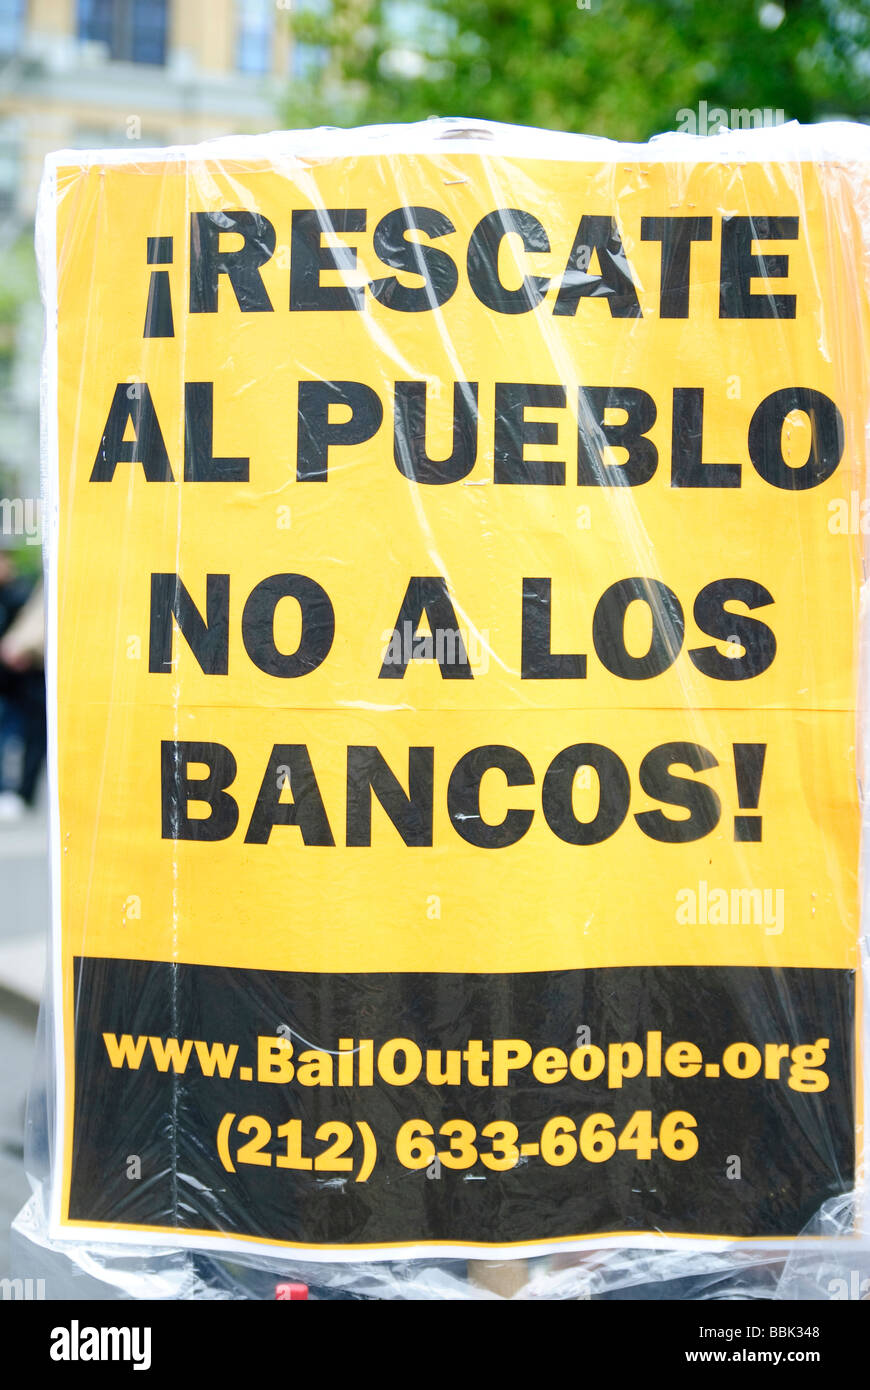 Propaganda posted by The Bail out the People Movement May 1 2009 Union Square Park New York City - Stock Image